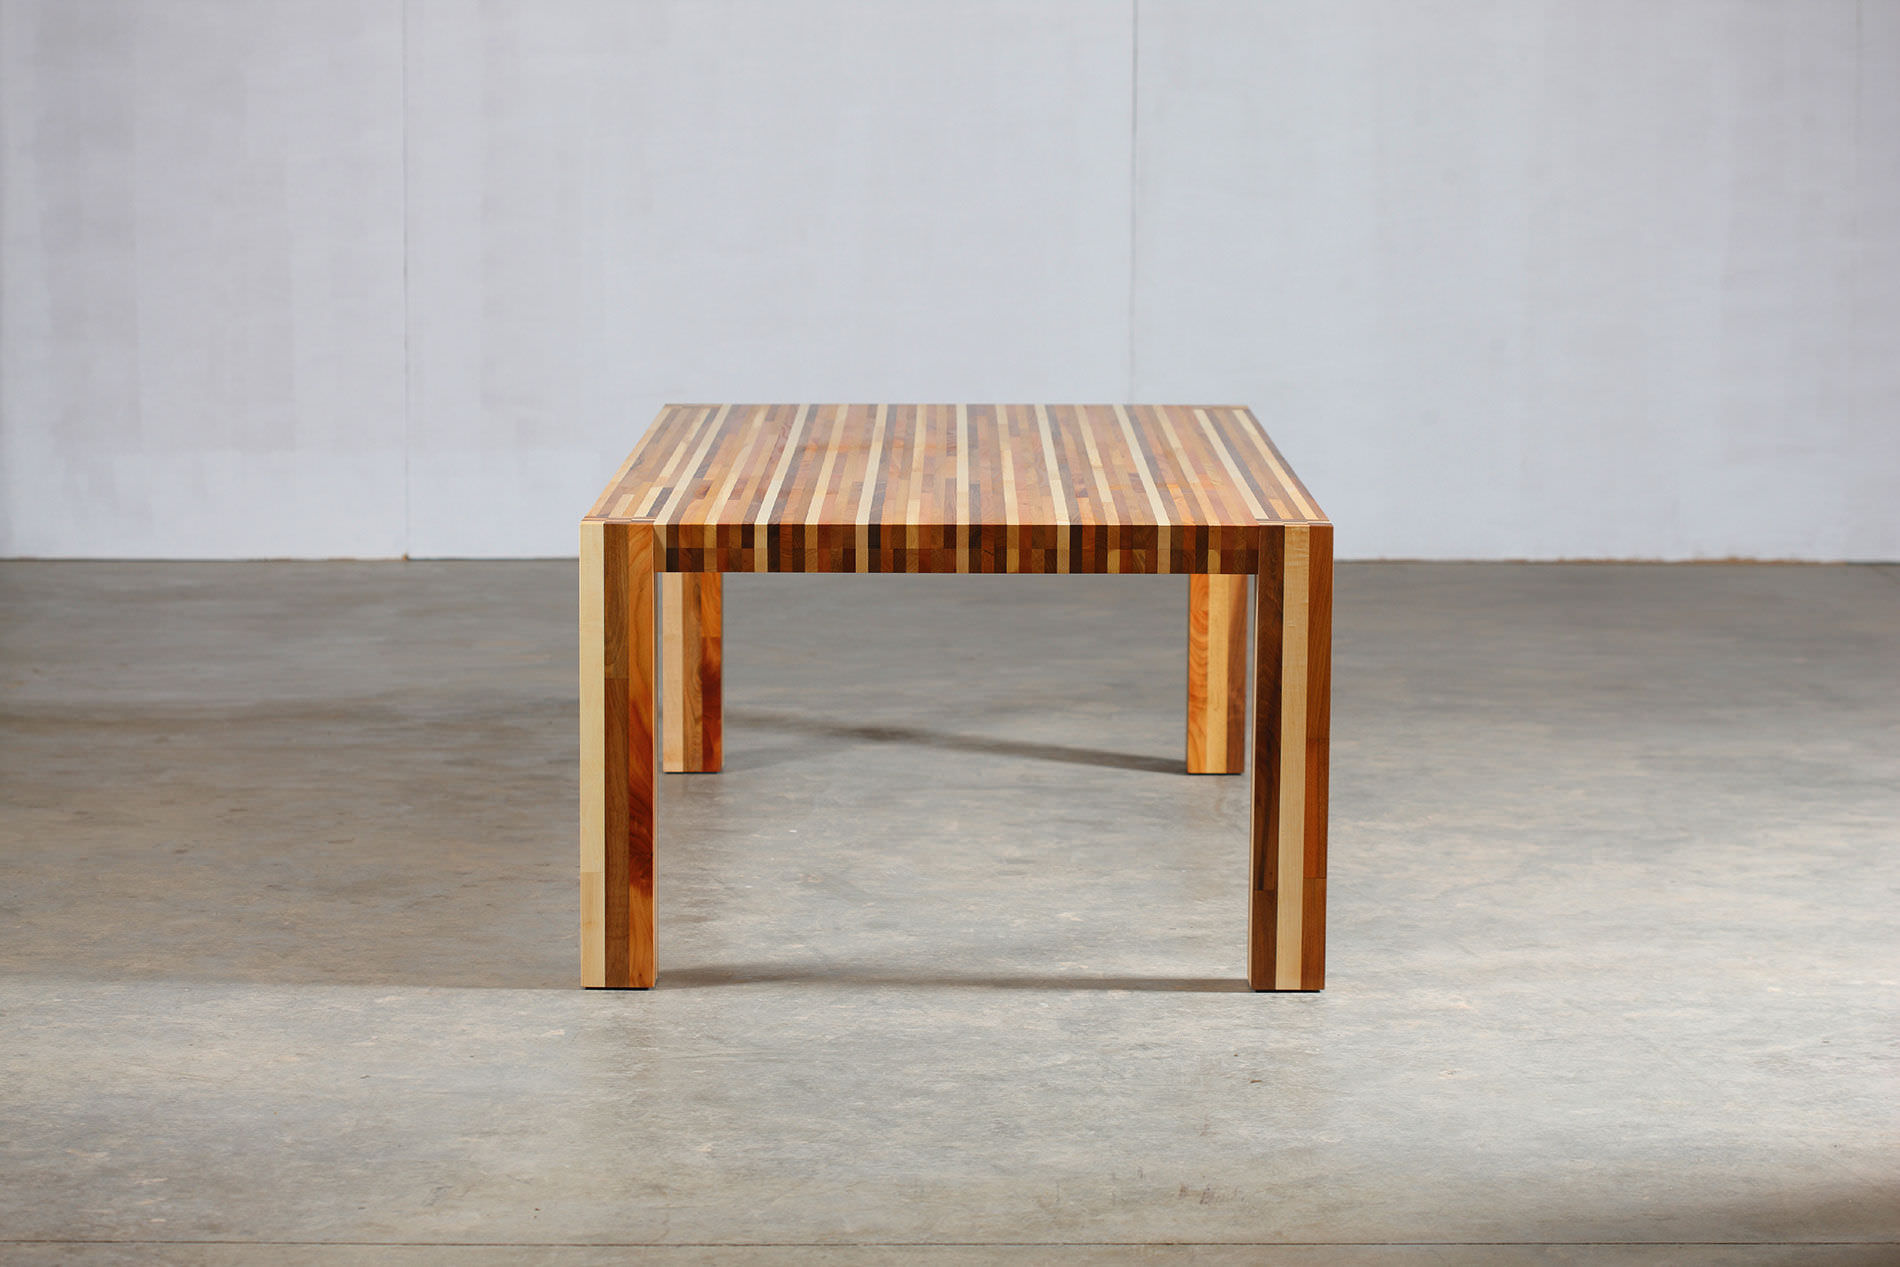 Contemporary table   wood   solid KILIM by Amir Vuk Zec Artisan Solid Wood  Furniture. Artisan Solid Wood Furniture